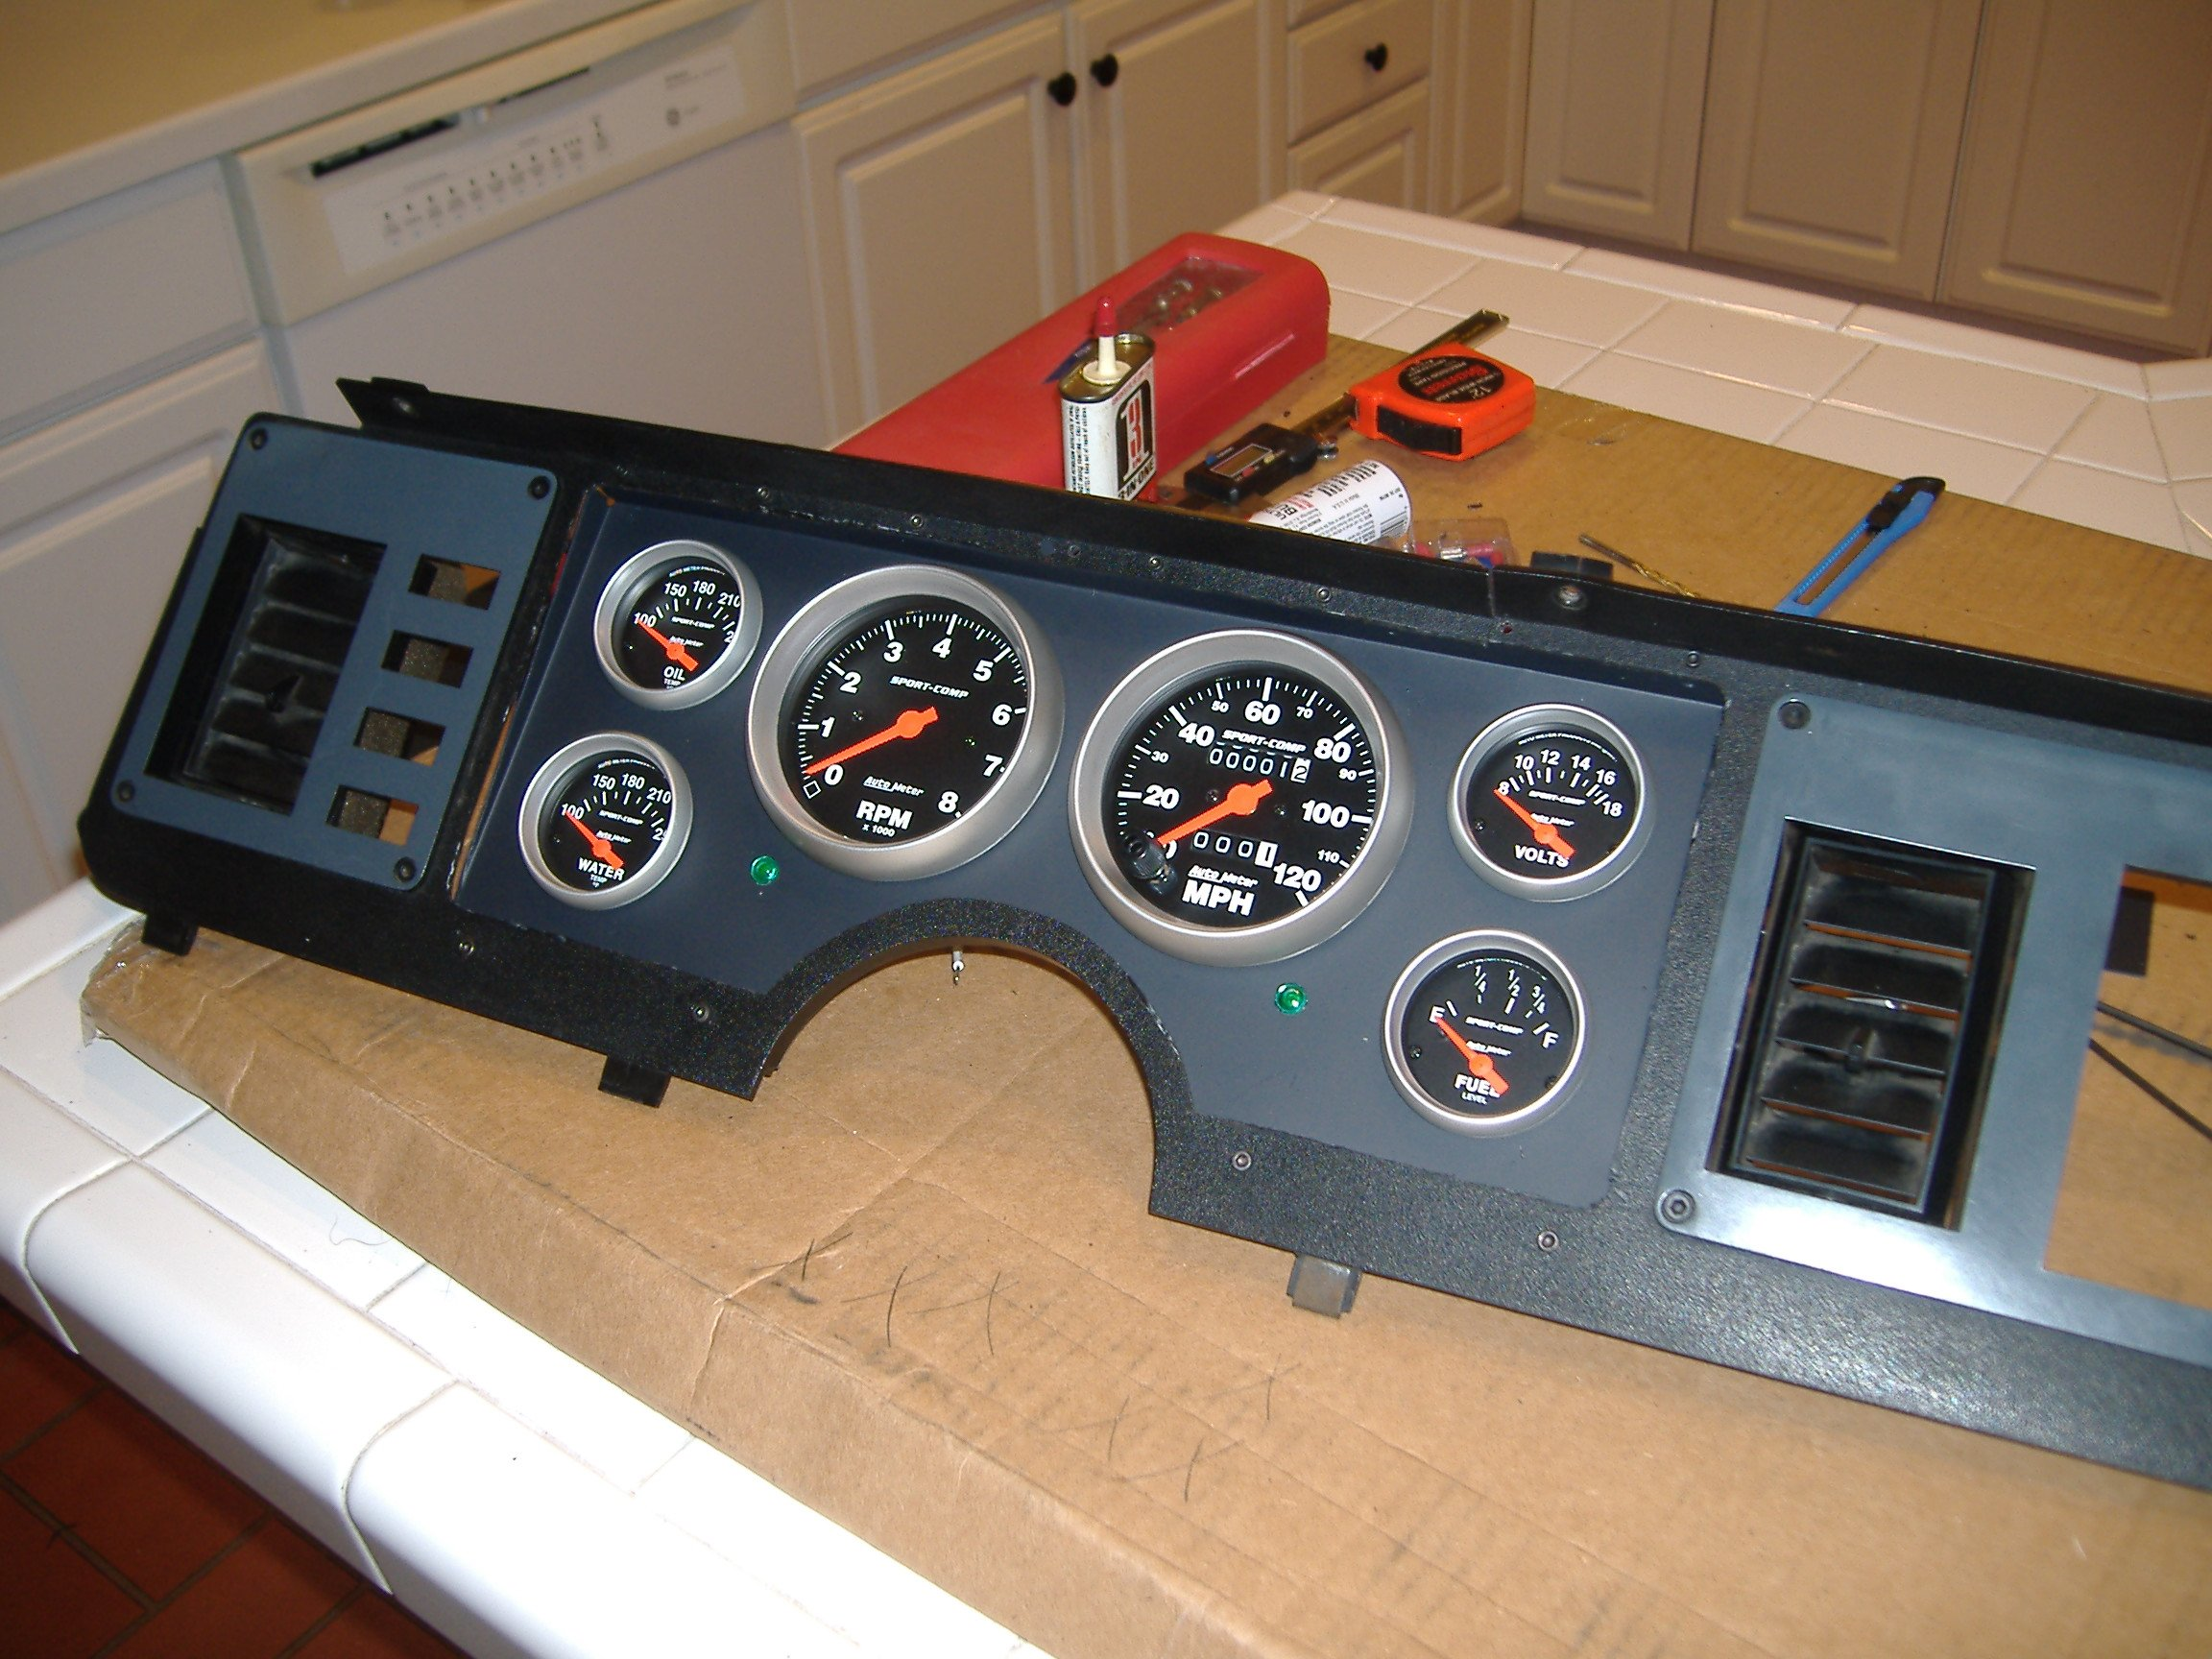 1990 Mustang Gt Alternator Wiring Diagram Library 1985 1986 Gauges Ford Forum Instrument Cluster